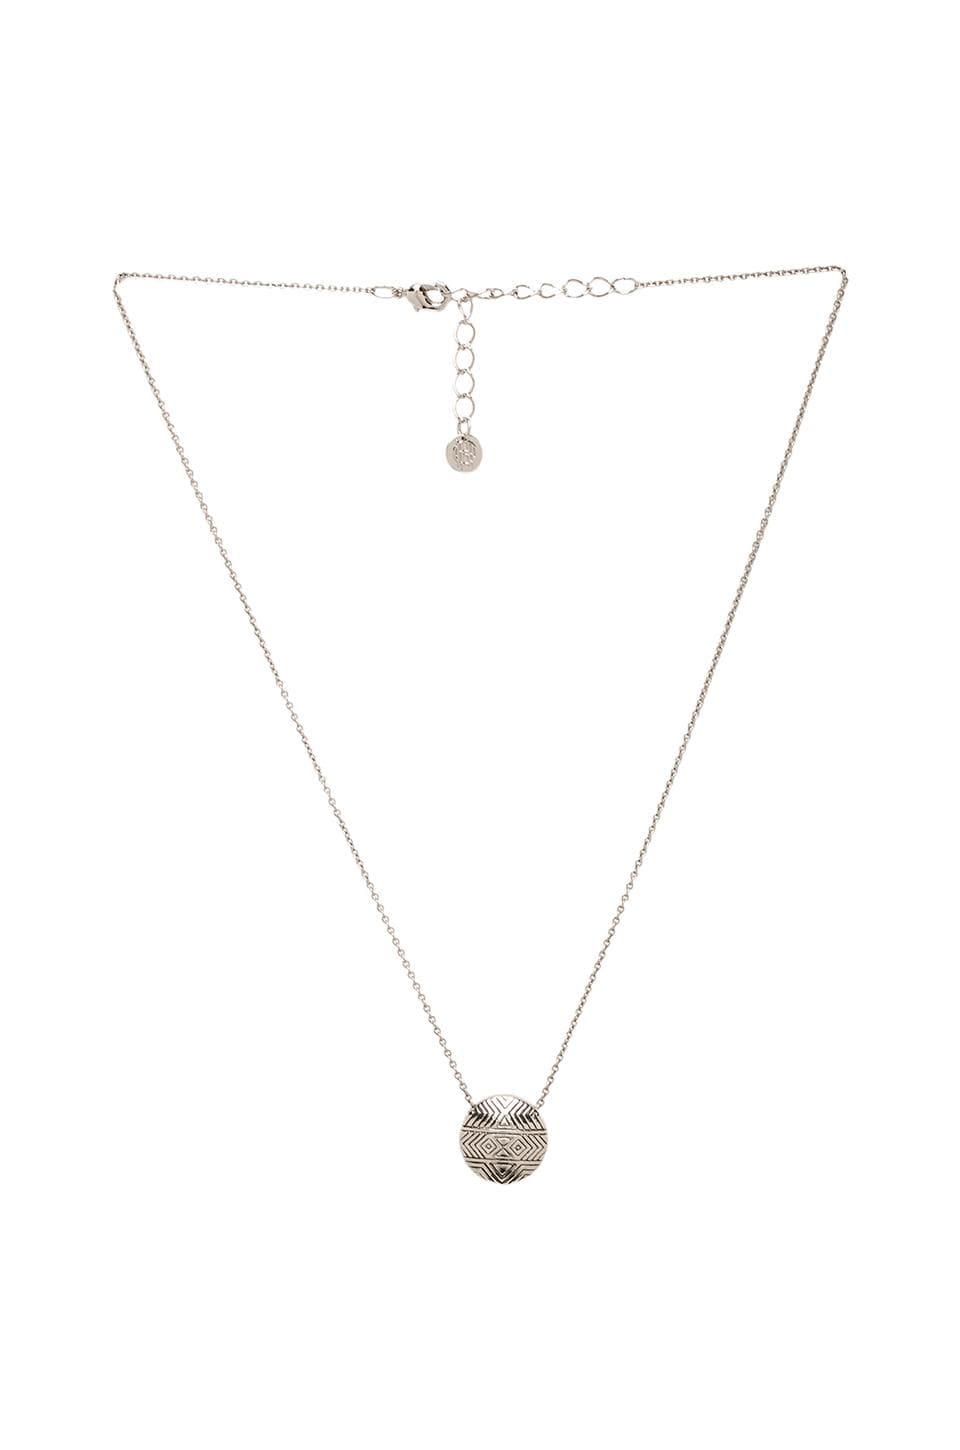 House of Harlow Tholos Mosaic Necklace in Silver